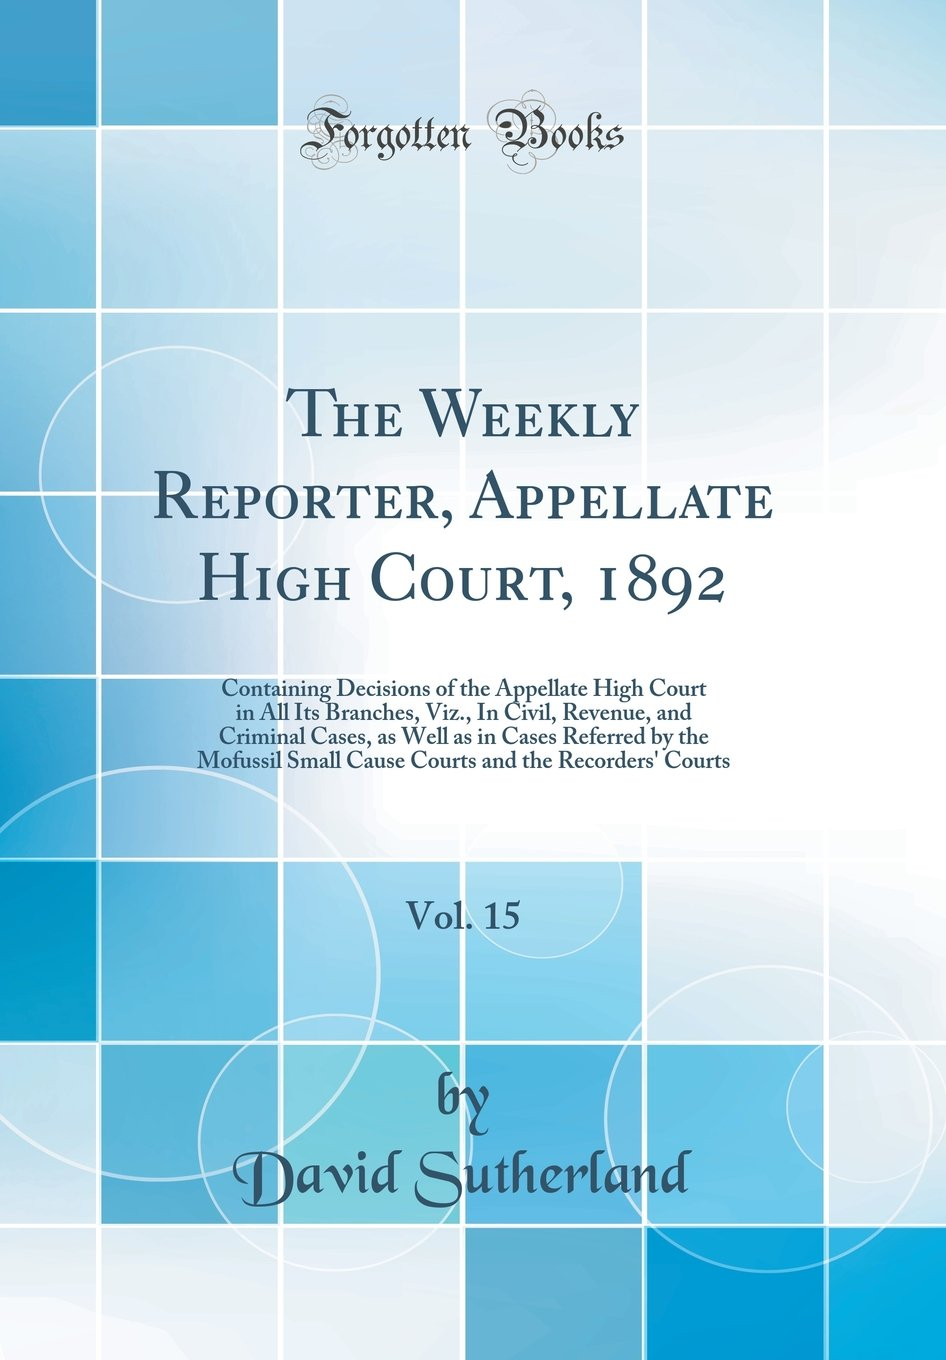 Read Online The Weekly Reporter, Appellate High Court, 1892, Vol. 15: Containing Decisions of the Appellate High Court in All Its Branches, Viz., in Civil, ... Small Cause Courts and the Recorders' PDF